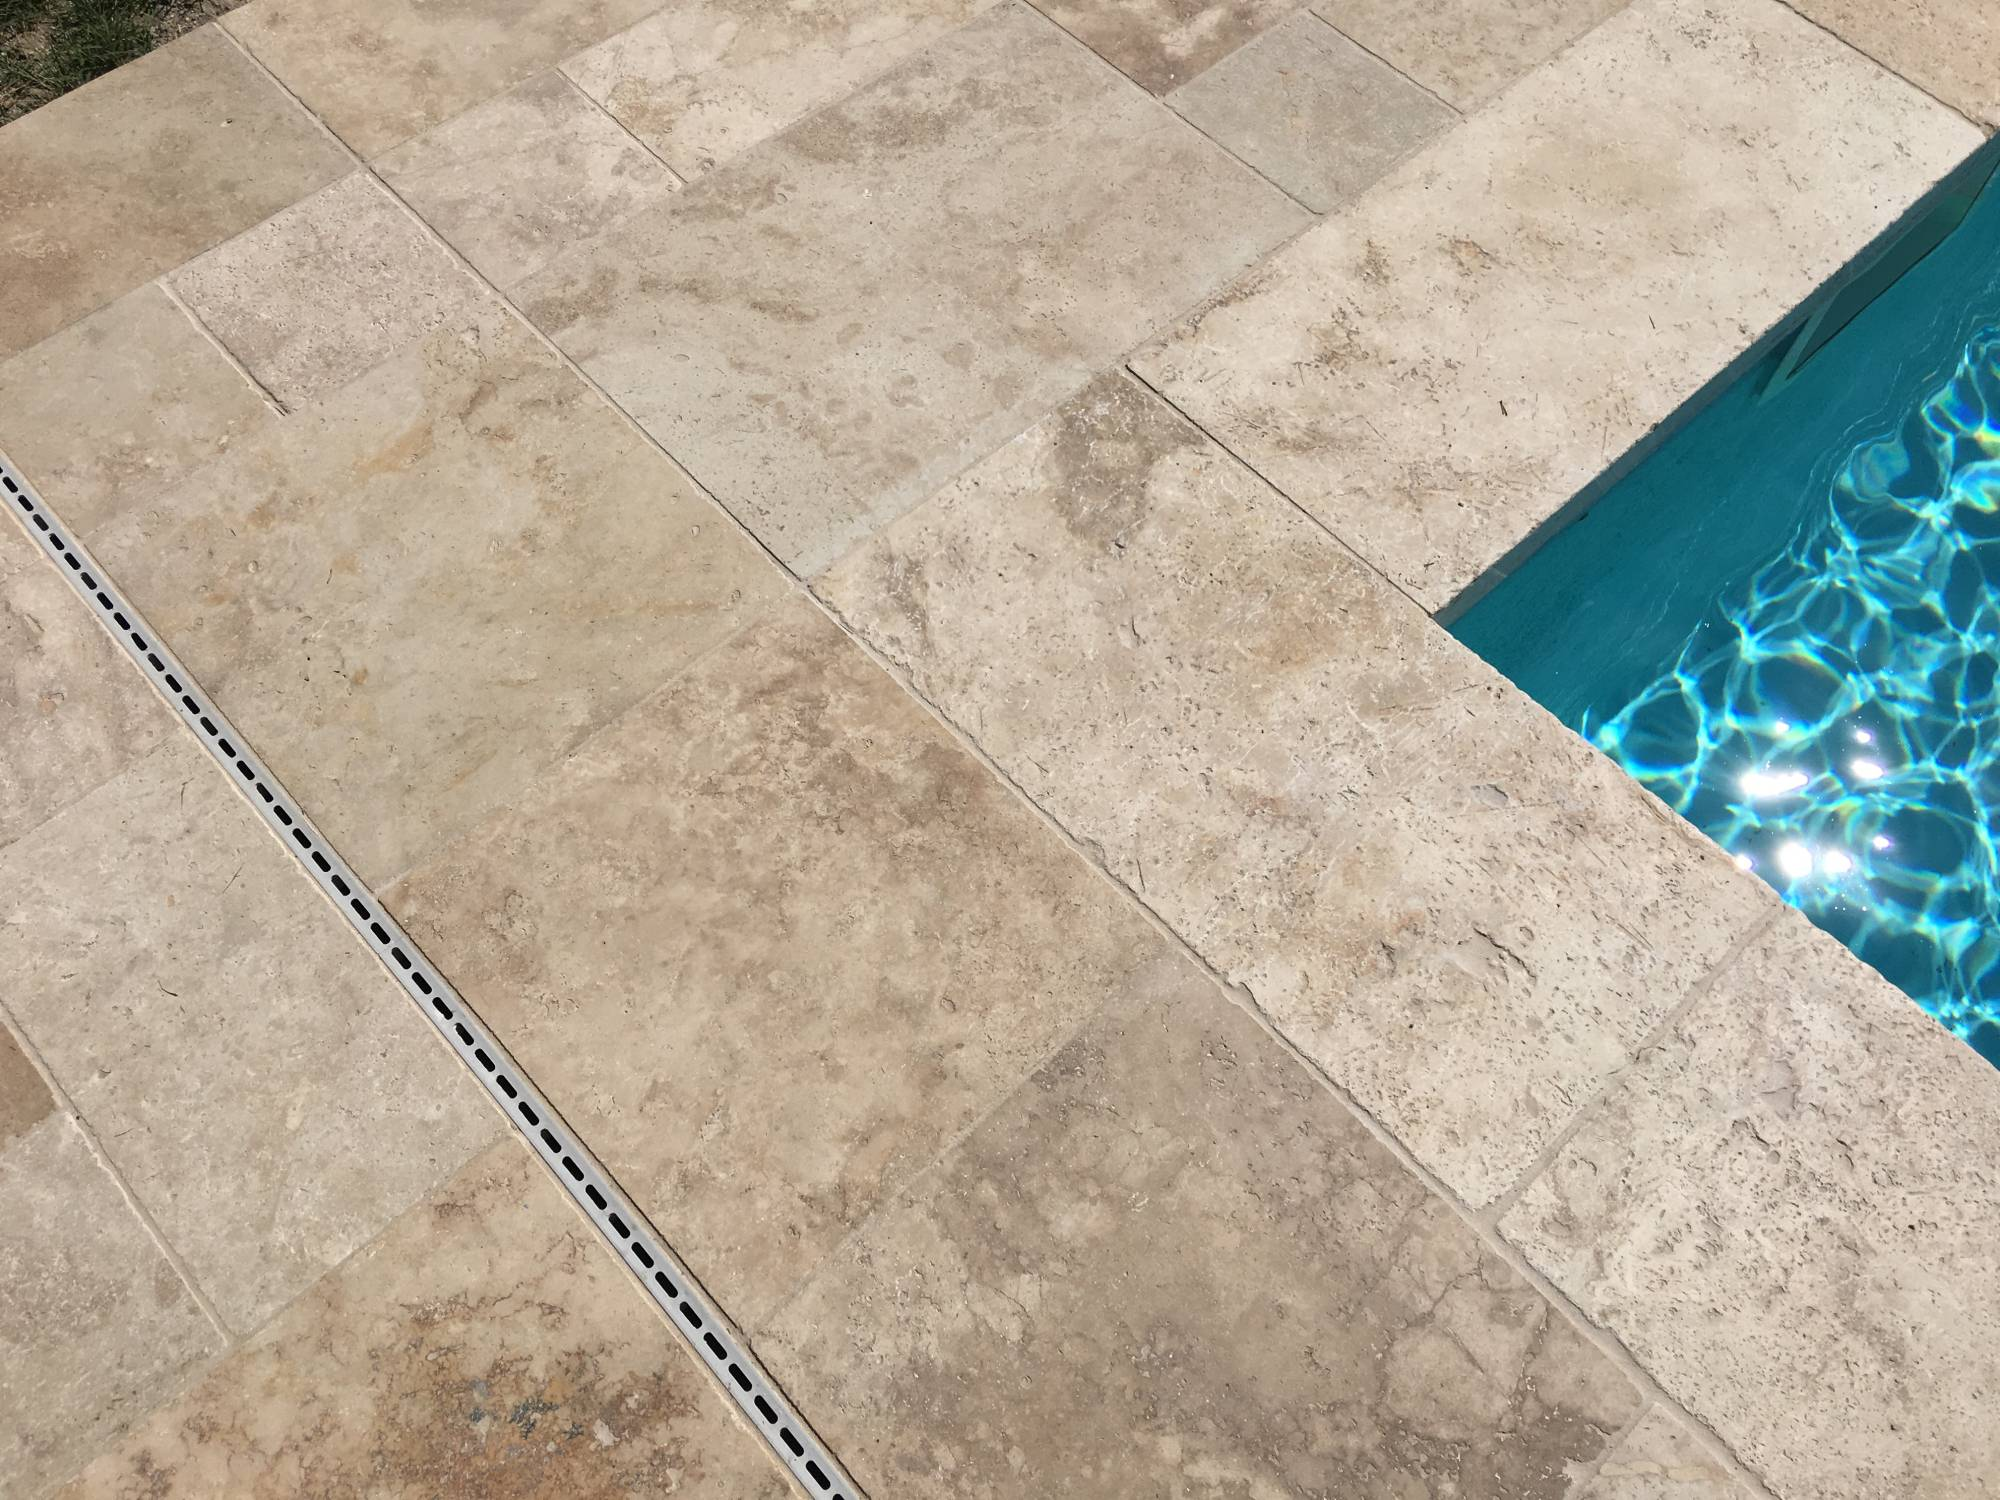 Piscine en travertin carrelage int rieur et ext rieur for Carrelage contour piscine